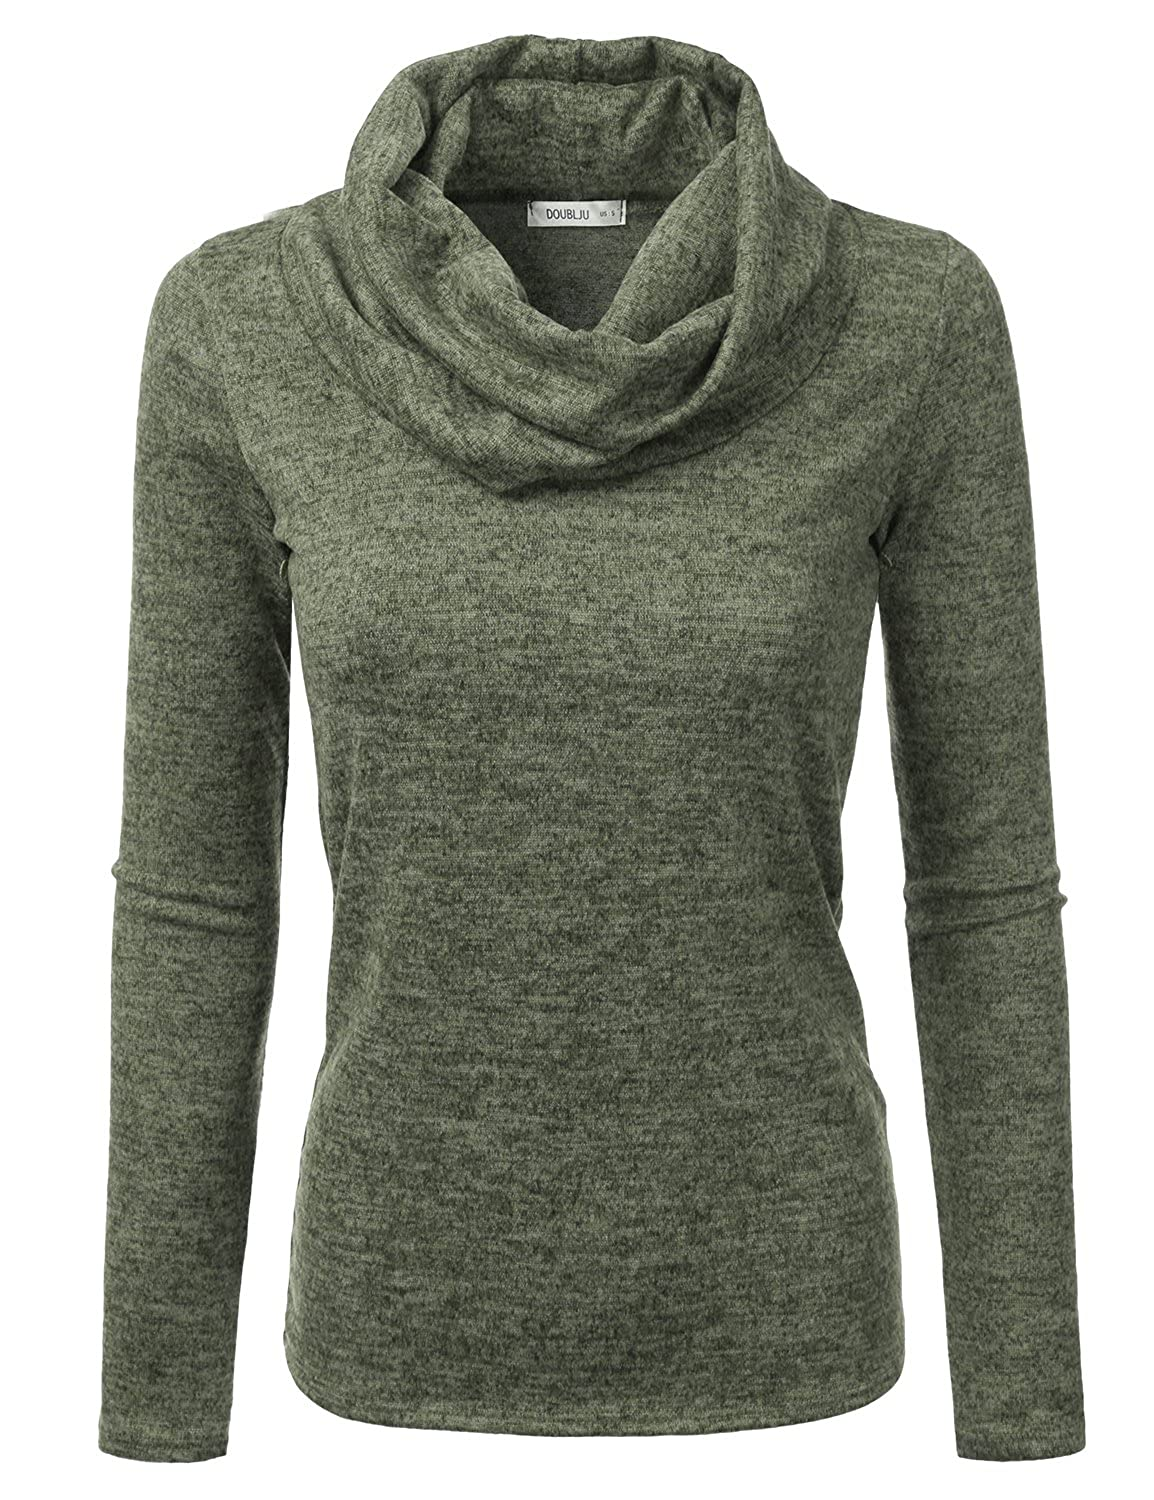 e21a44f3ea9 Doublju Cowl Neck Heather Knit Sweater Top for Women with Plus Size at  Amazon Women s Clothing store